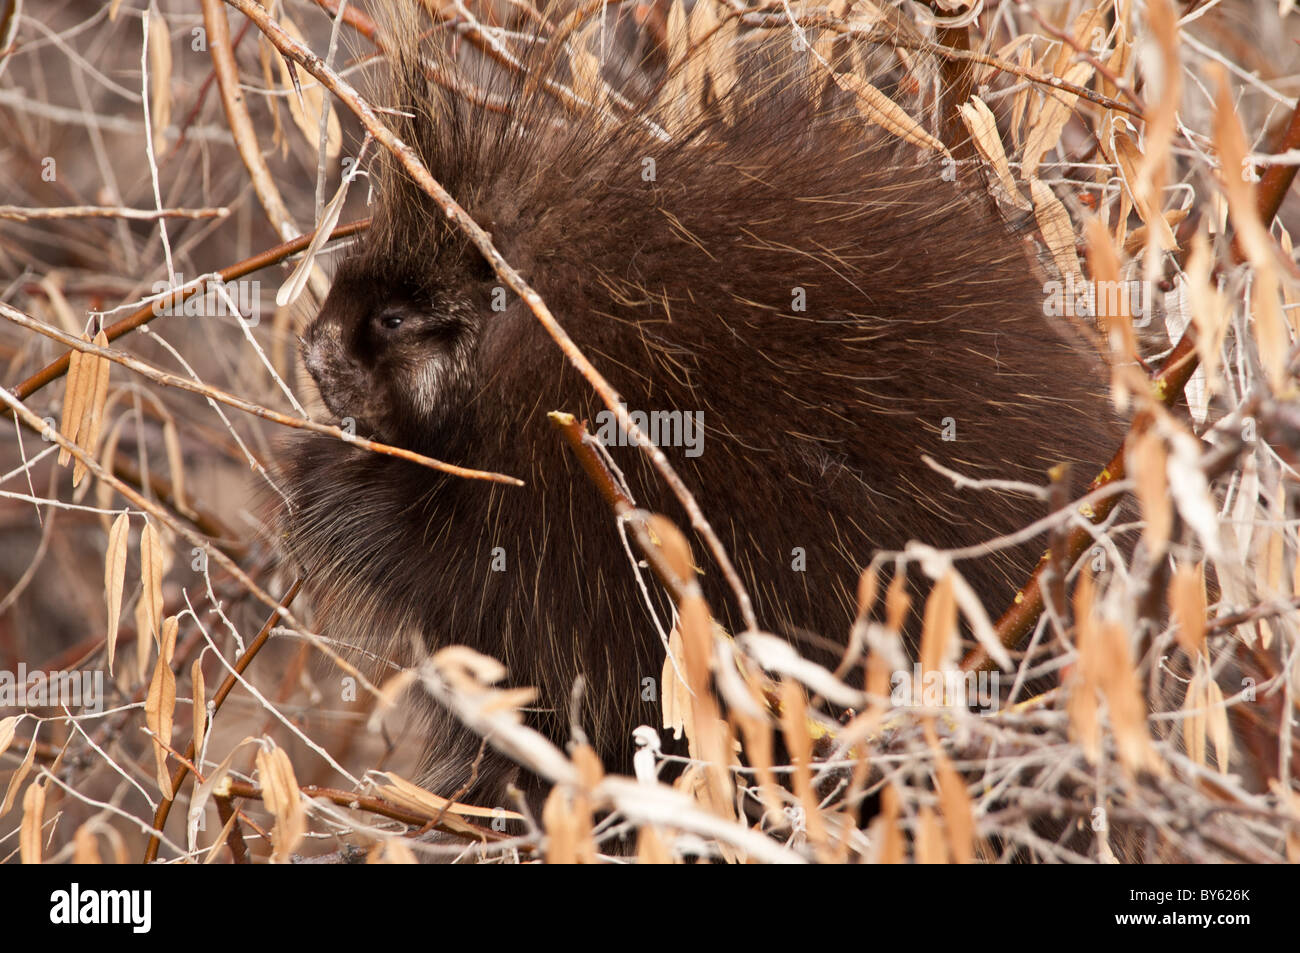 Stock photo of a North American porcupine resting in a tree. Stock Photo